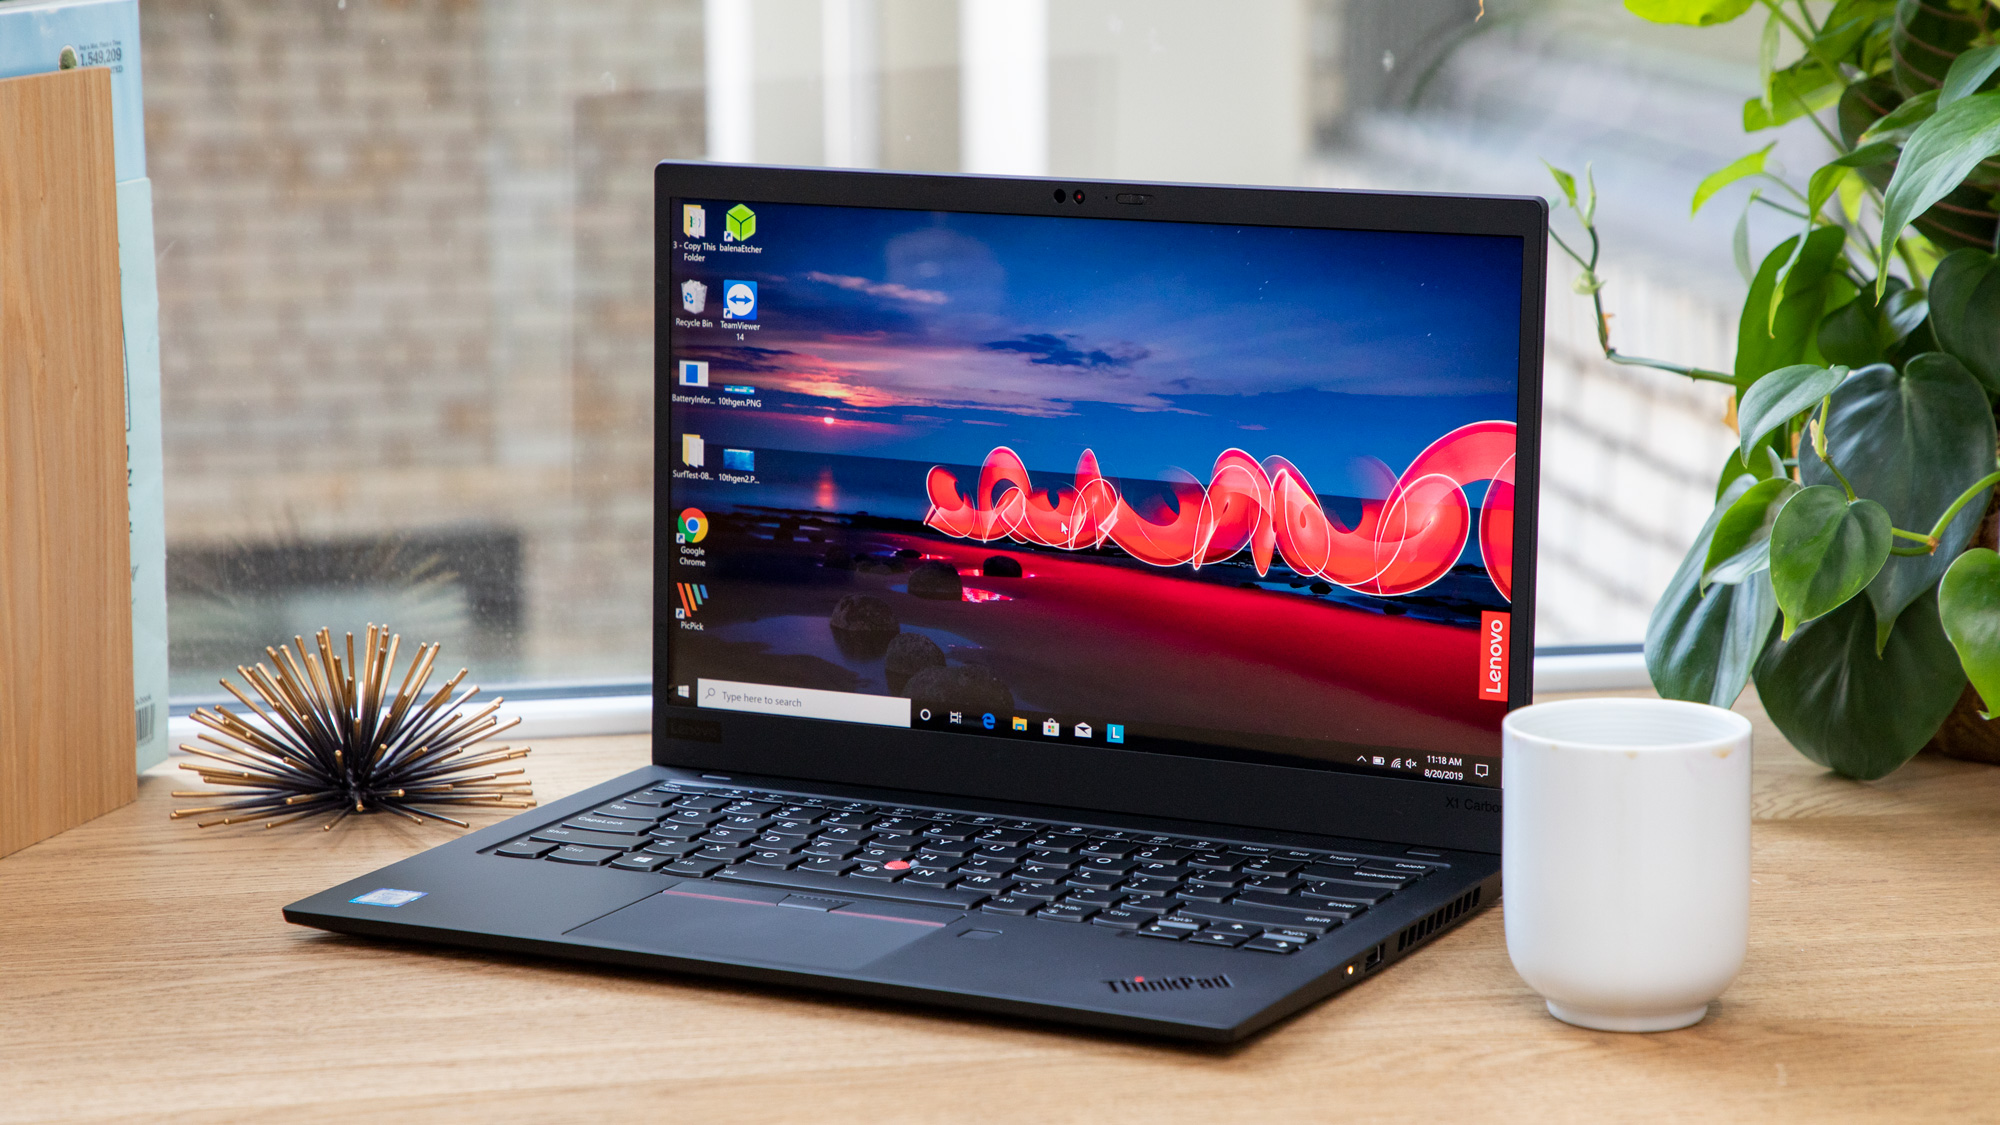 Best Laptop for Price This Month